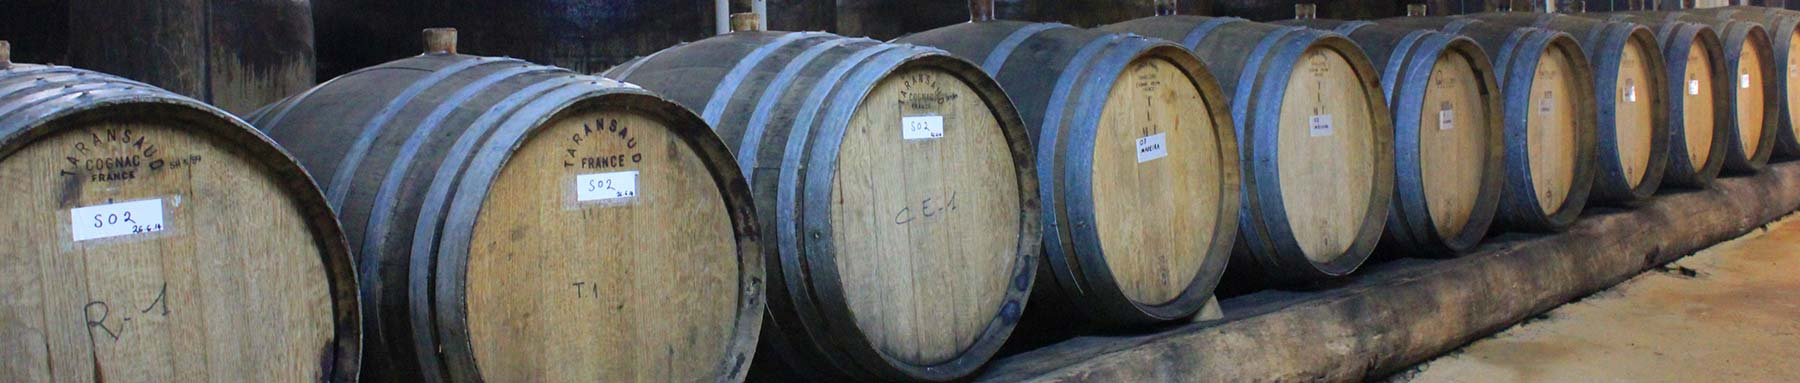 Row of wine barrels at Tyrells Wines on our Hunter Valley private wine tours